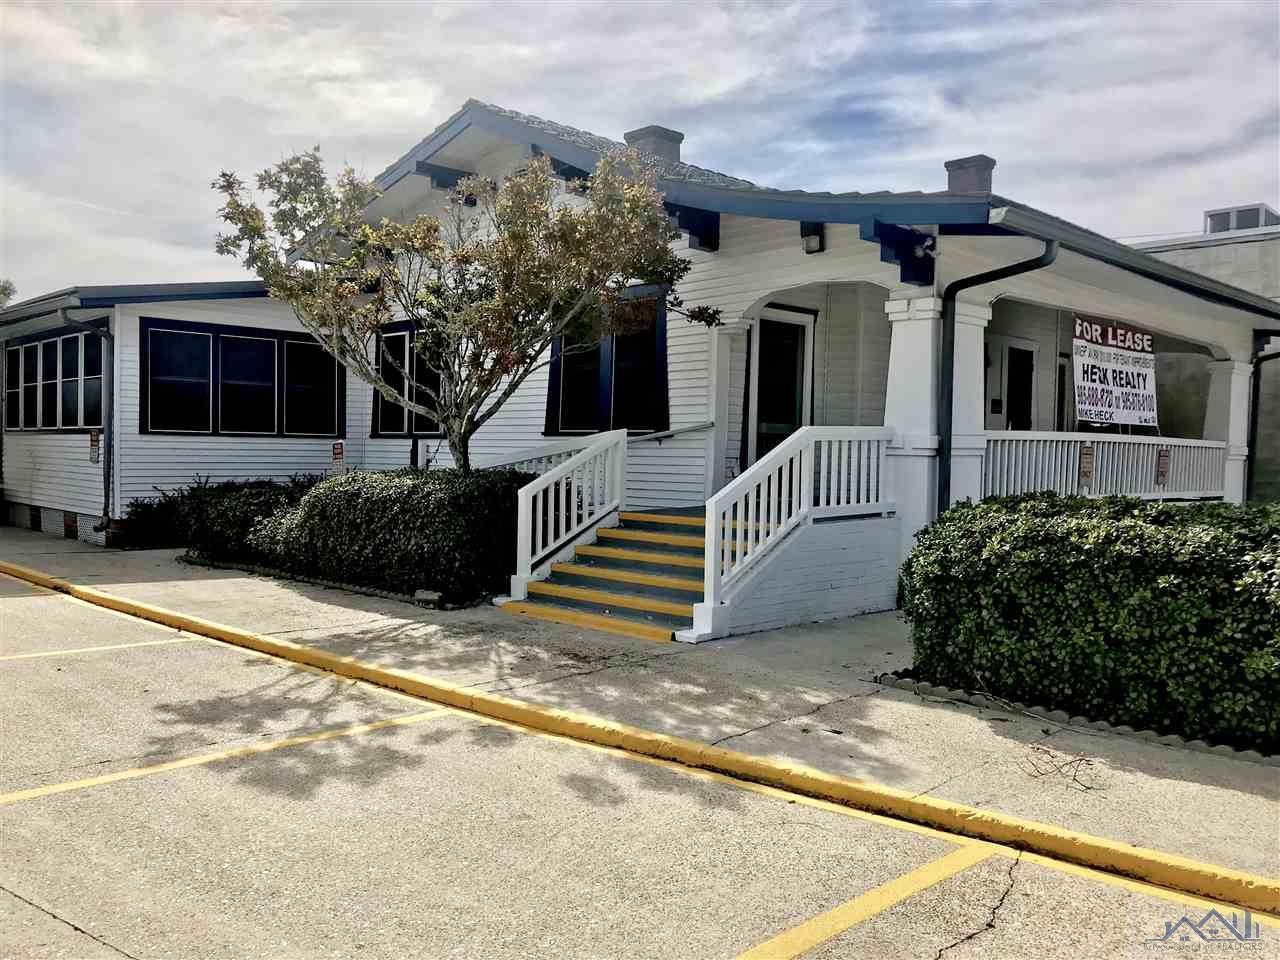 Ideal Location for any type of Business! Located in the Heart of Downtown Houma with access to Legal Offices, Medical practices, Hospitals, City & District Courts, Retail Shops, Government Towers, Churches, Schools and Restaurants. This building was previously a Medical Practice and has a large Reception/Waiting area, Large Secretarial area, 7 offices, 3 Bathrooms, Kitchen area and is ADA compliant.  Enjoy the original wood floors, High ceilings, 2 Fireplaces, nice wood walls in most areas and a Beautiful Front Porch. 1 room was a former surgical room with FRP (Fiberglass Reinforced Plastic) walls . There are approximately 14 paved parking spaces (2 covered) with a detached Storage area. This is a Triple Net Lease. The Owner is willing to pay up to $10,000.00 for Tenant improvements for those who qualify.